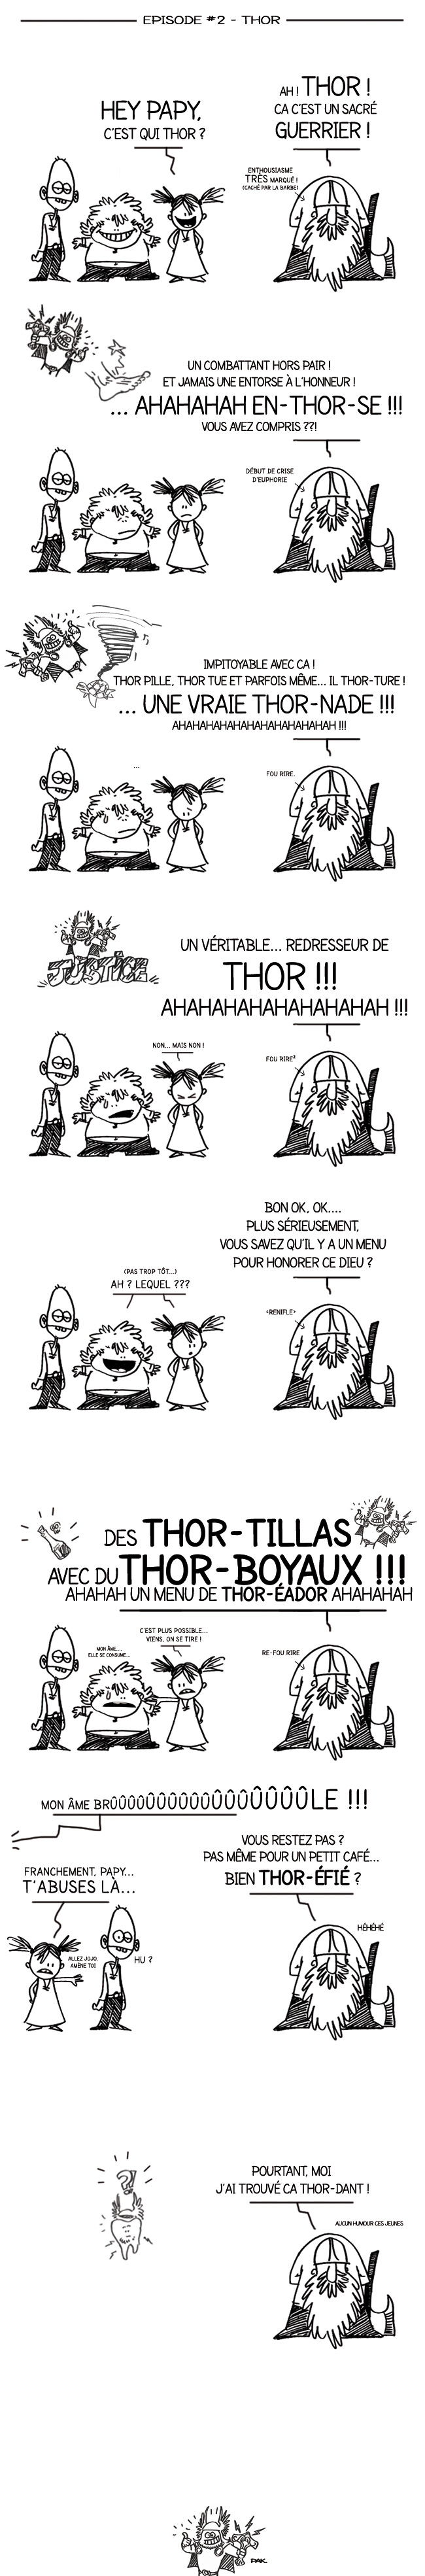 Papy Viking la BD - InTHORduction